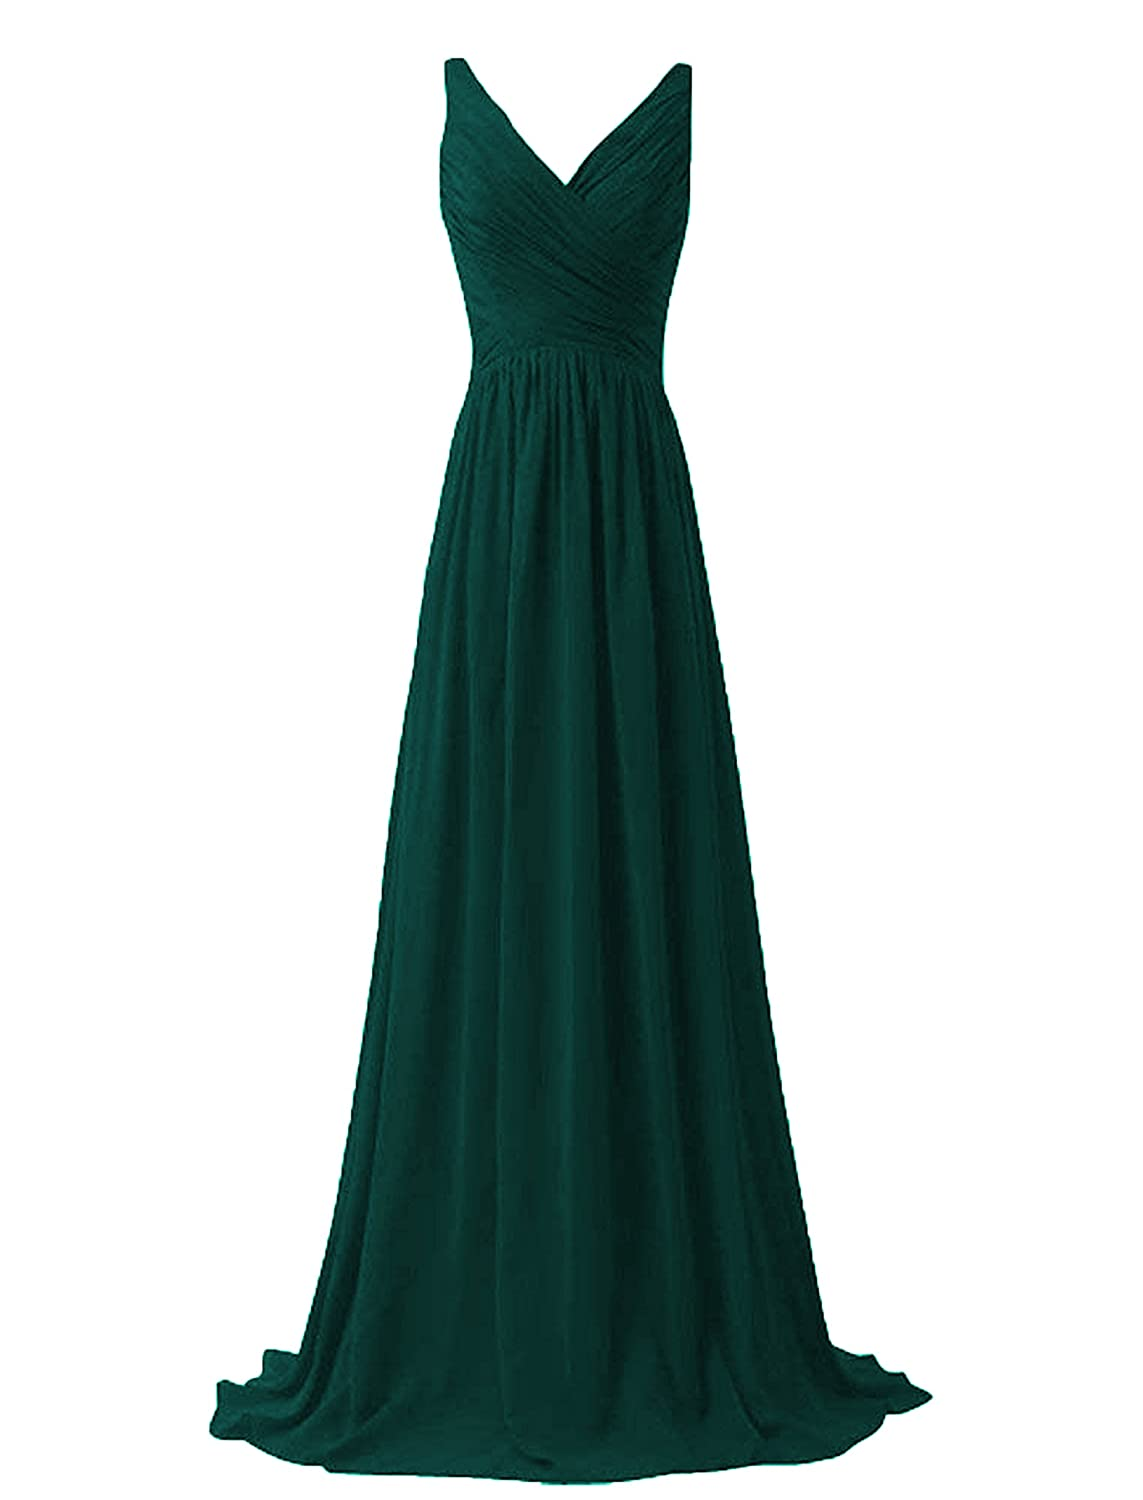 ANFF Women's Long Evening Gowns Formal Party Prom Dress V Neck Bridesmaid Dress NB029